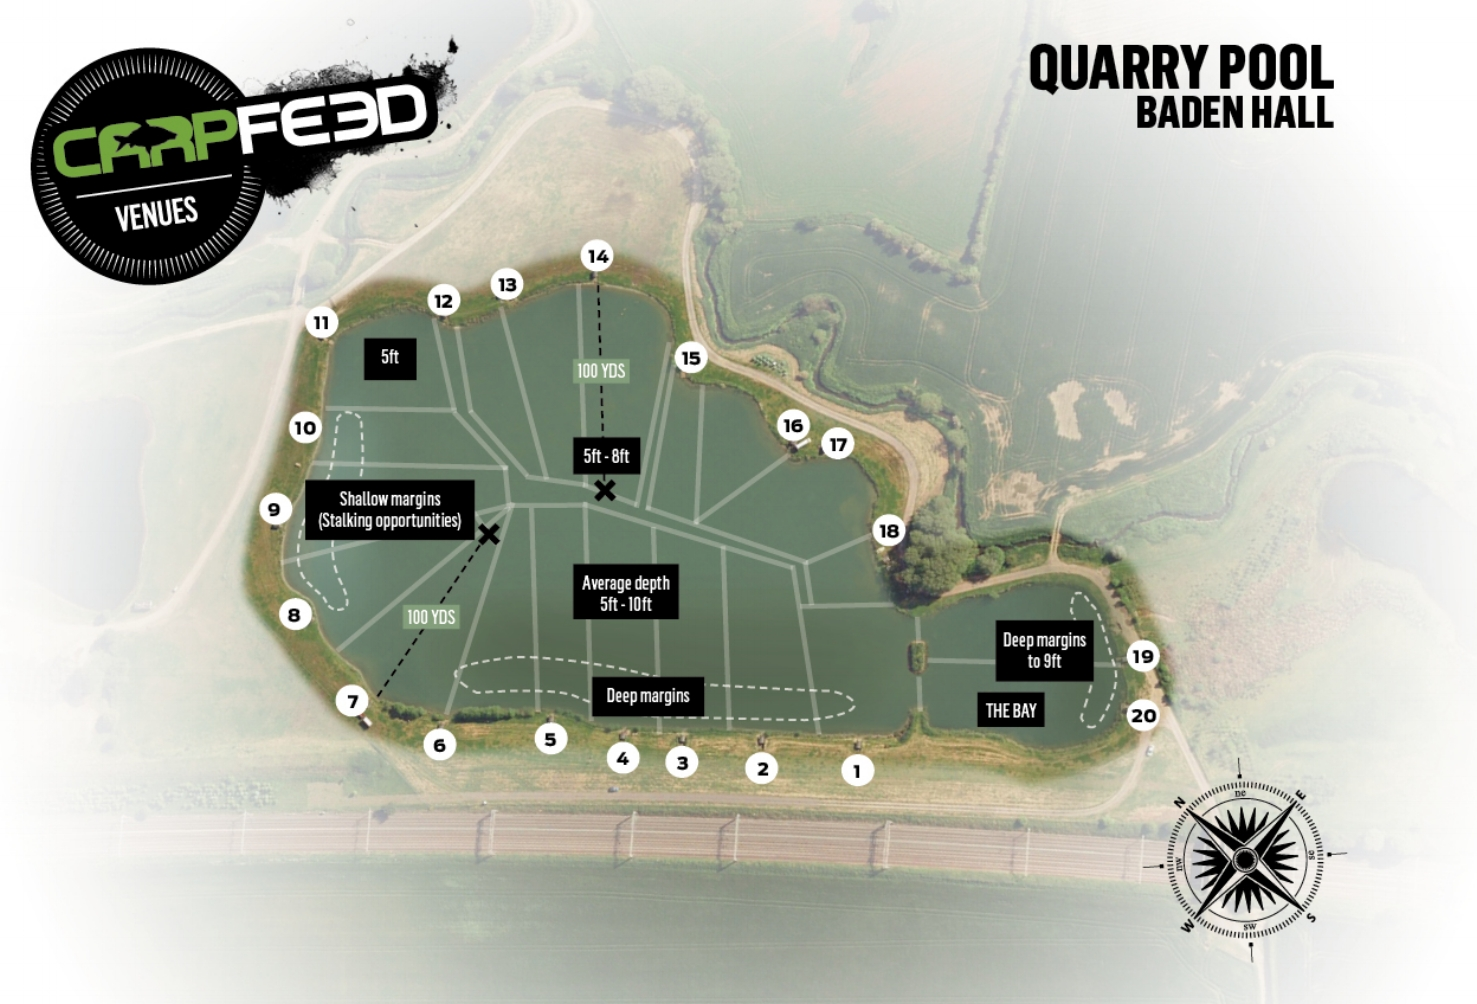 CLICK THE MAP FOR OUR GUIDE TO QUARRY POOL